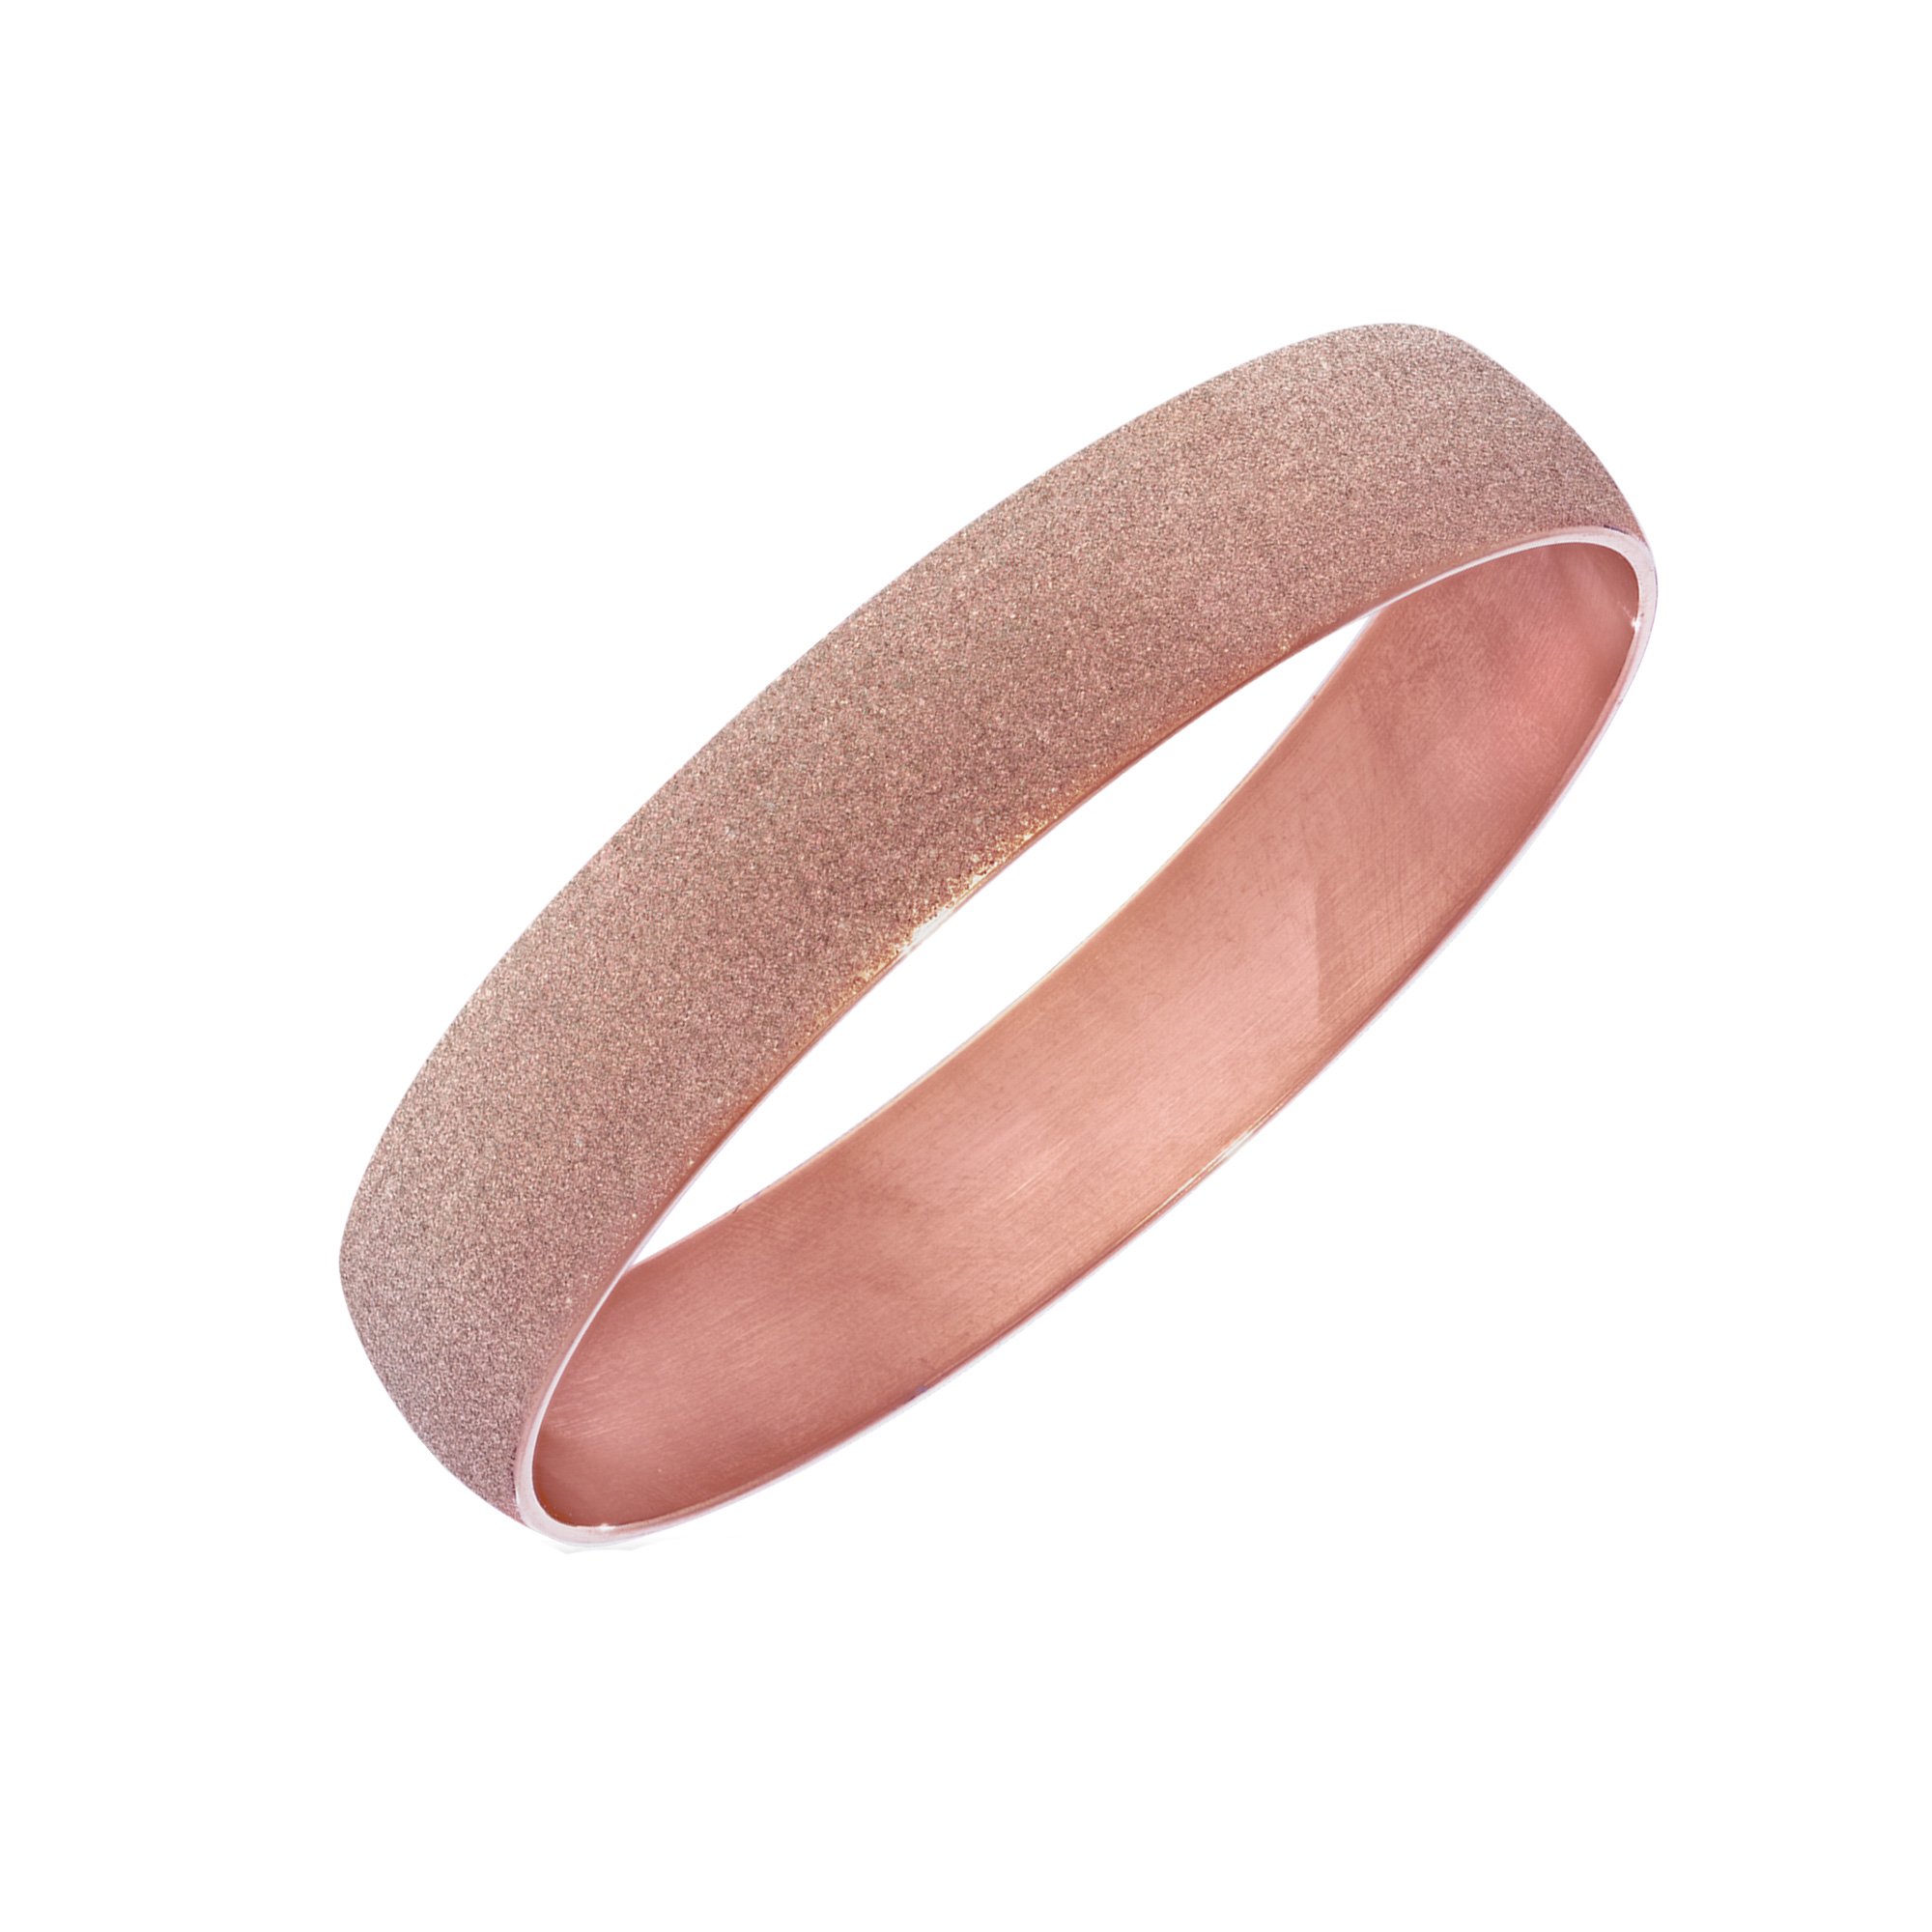 Rose Tone Stainless Steel With Rose Glitter Finish Bracelet Bangle